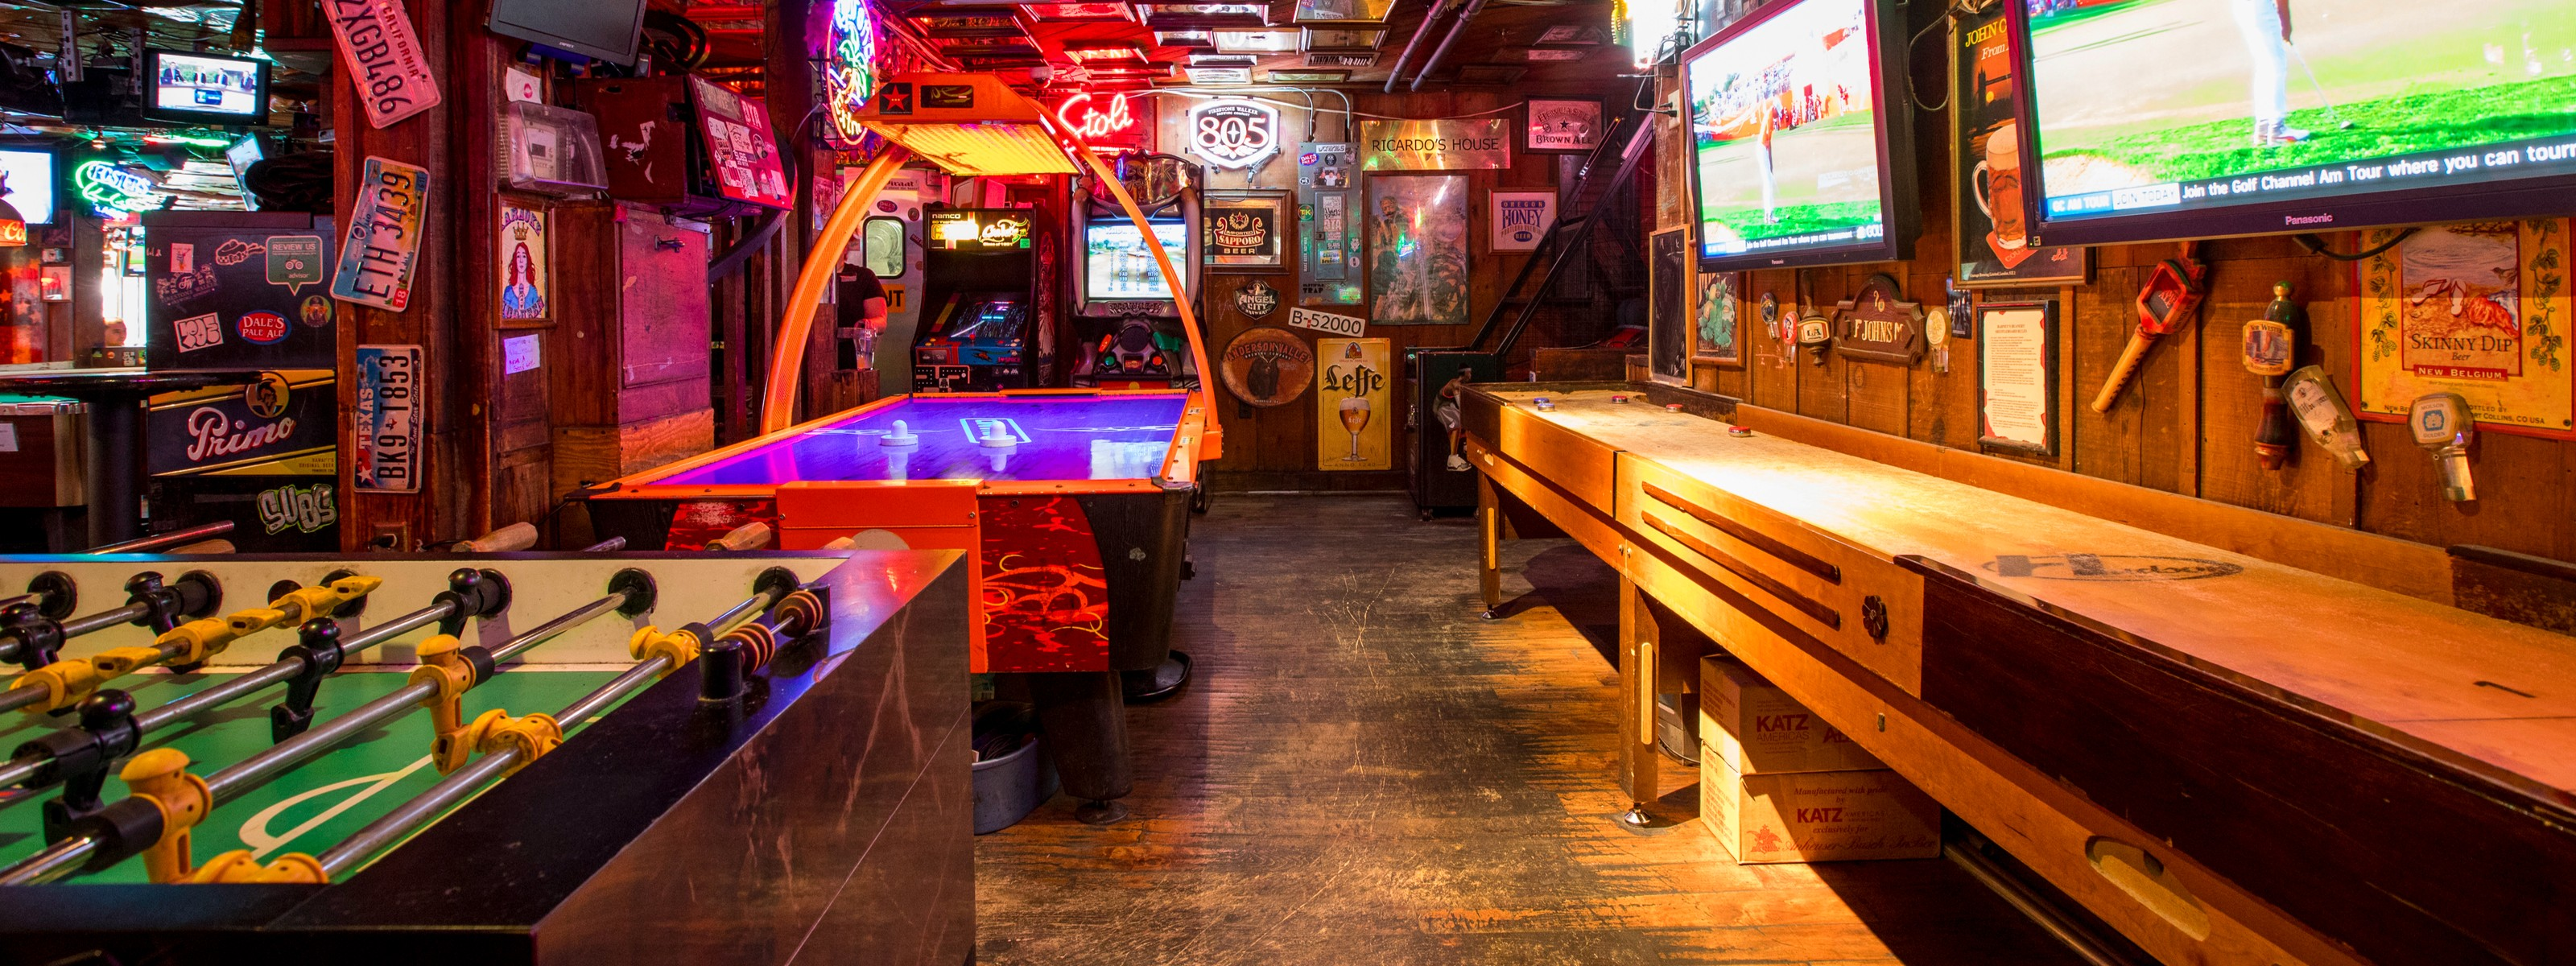 21 Fantastic Gay Bars in San Francisco to Meet New People